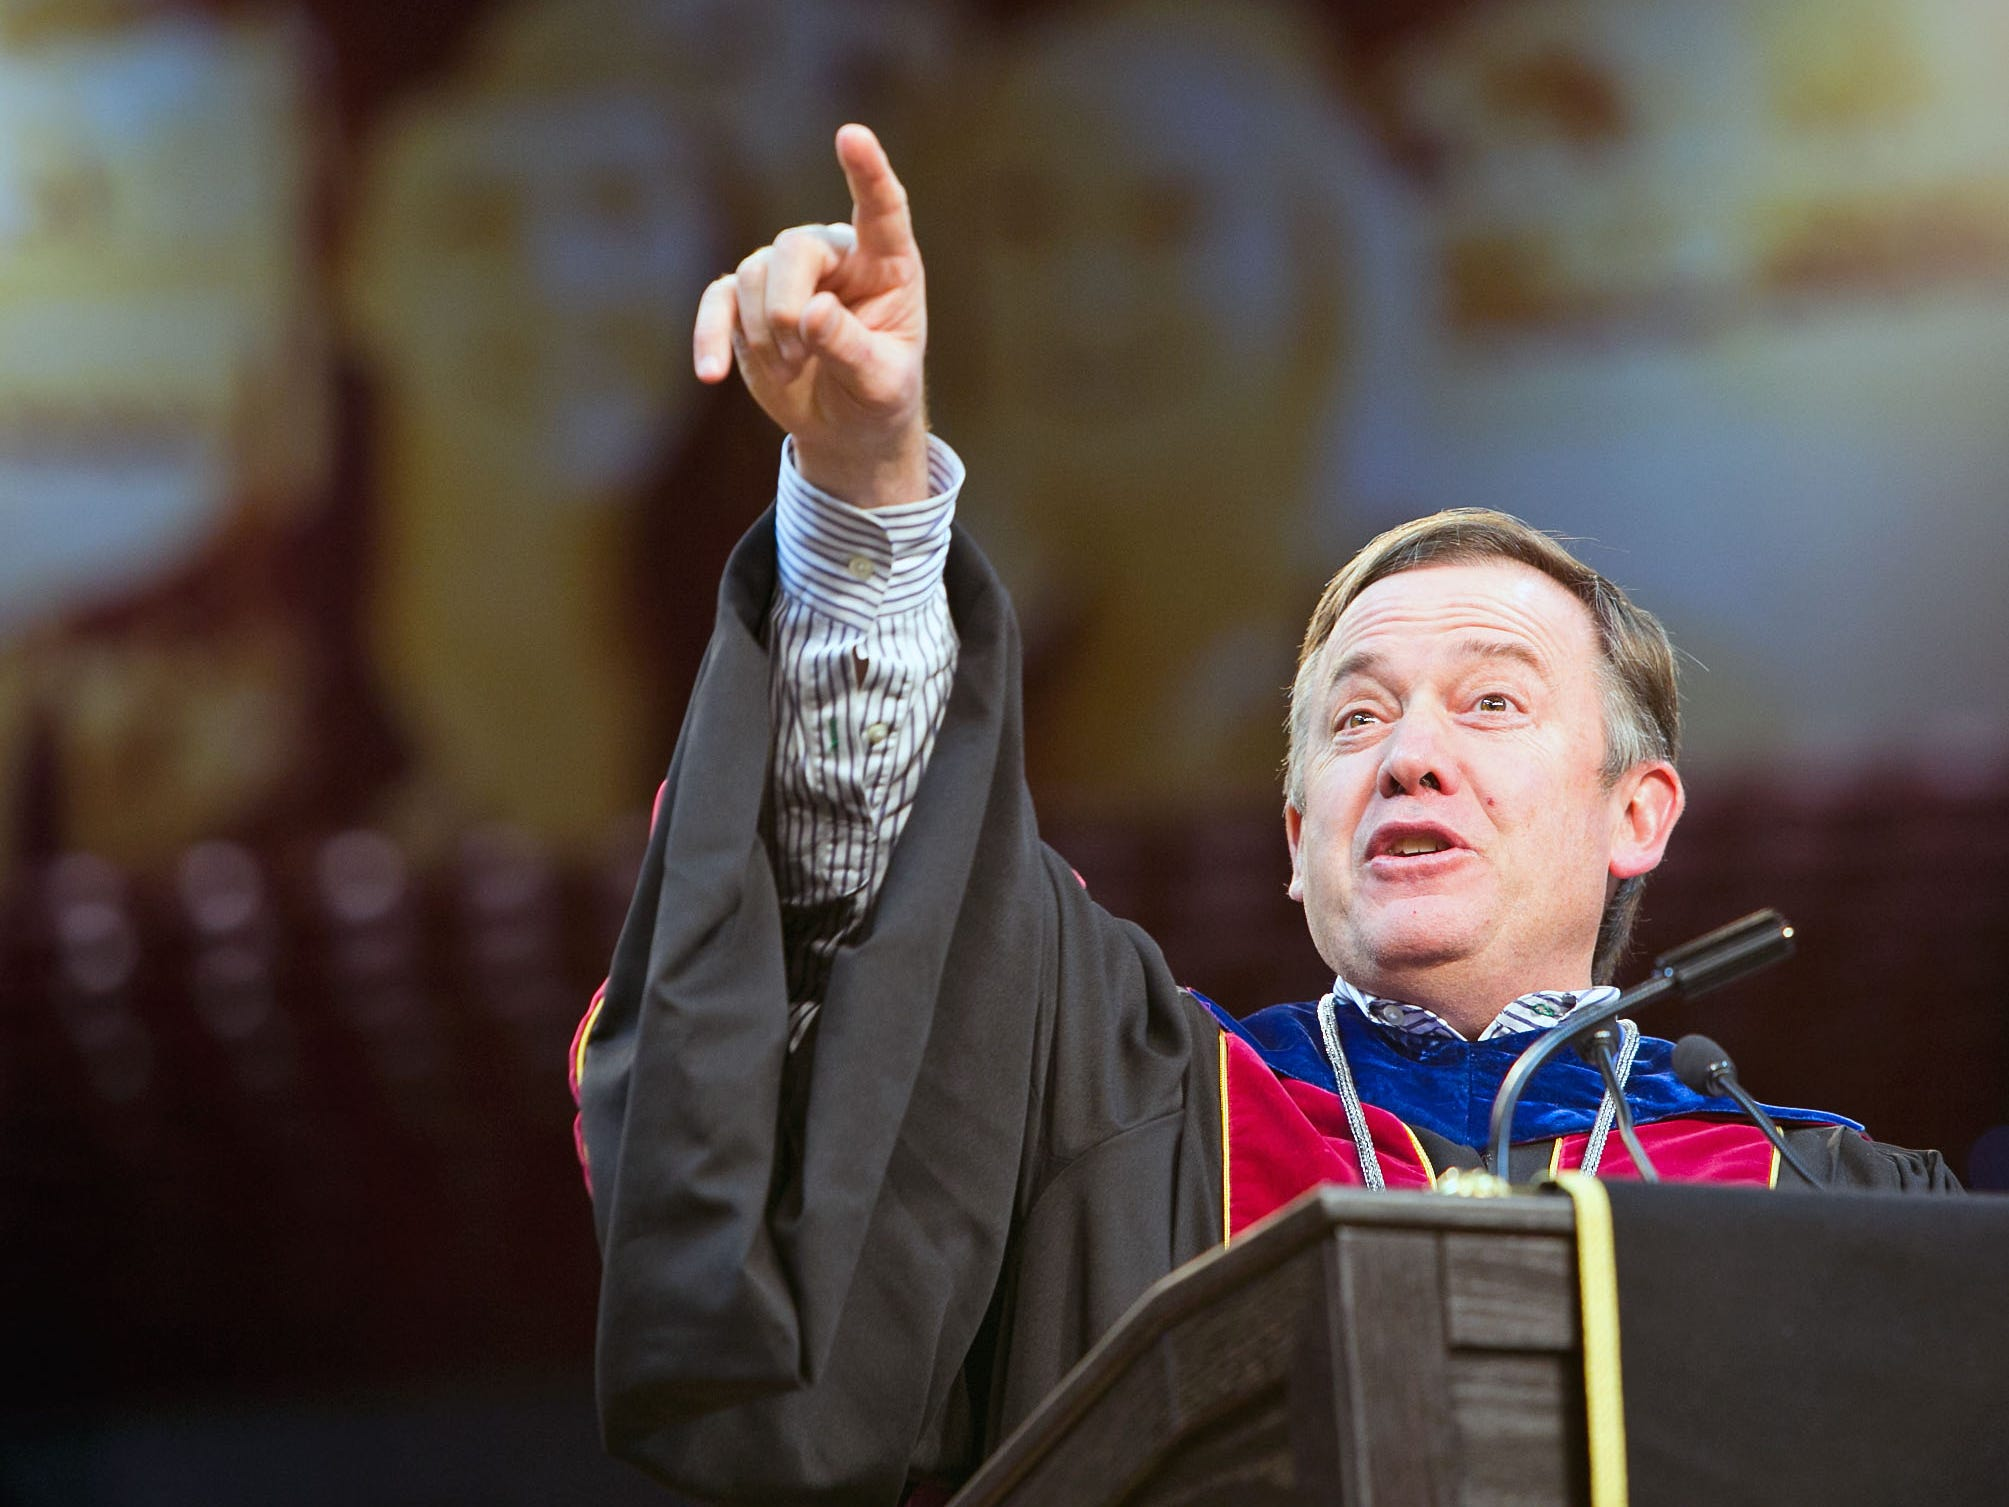 ASU president Michael Crow speaks to graduate students at the 2012 University Graduate Commencement in Tempe.